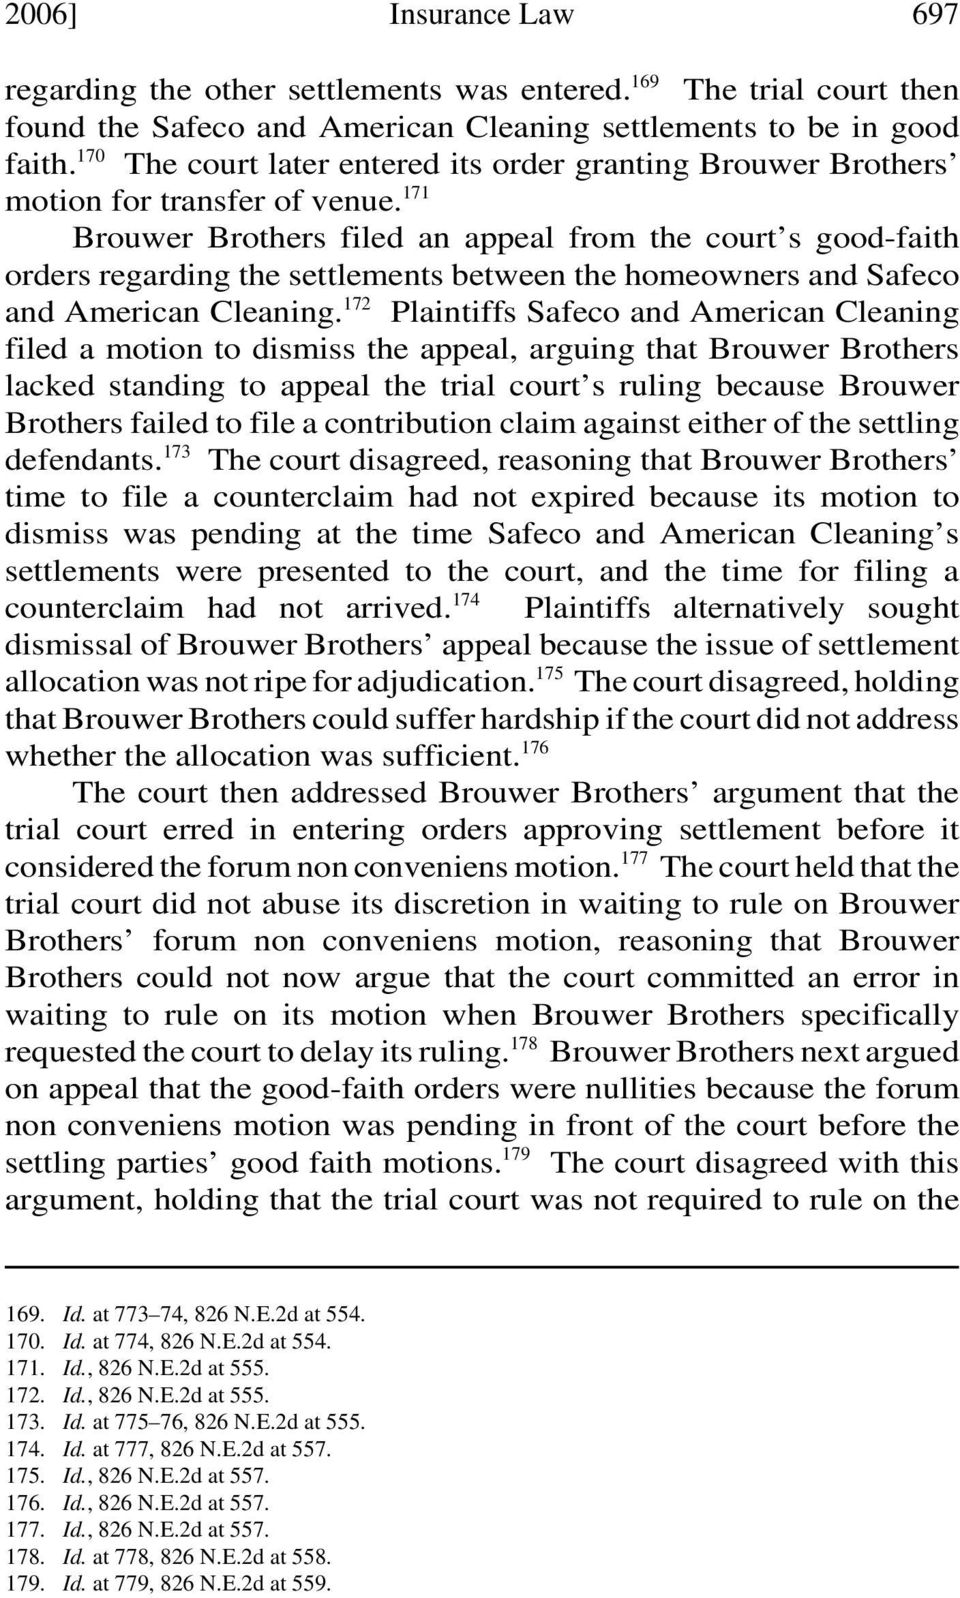 171 Brouwer Brothers filed an appeal from the court s good-faith orders regarding the settlements between the homeowners and Safeco and American Cleaning.